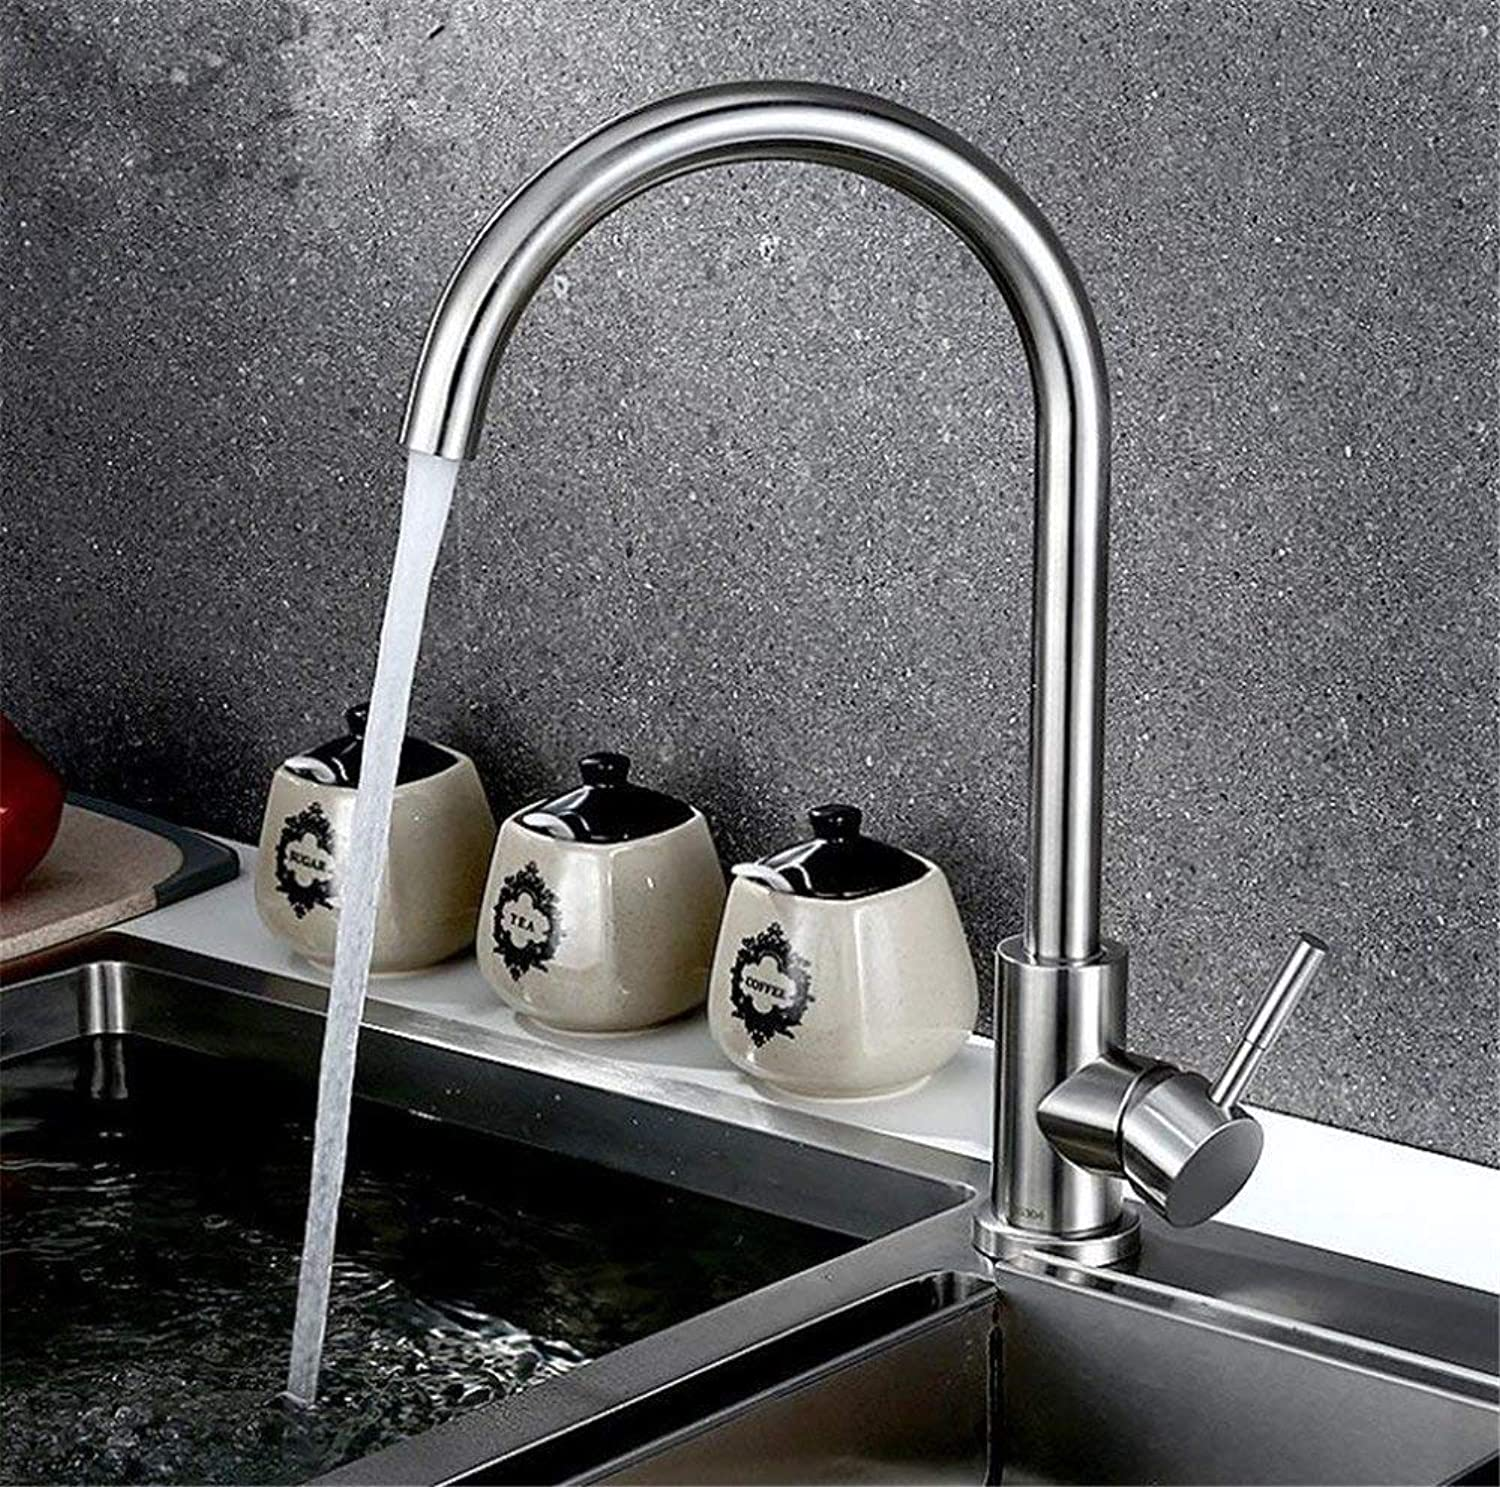 Oudan Kitchen Faucet Mixing Valve to Full Hot and Cold Copper Body 304 Stainless Steel Cold Vegetables Basin Sink Single Cold redatable Ceramic Valve Core (color   -, Size   -)